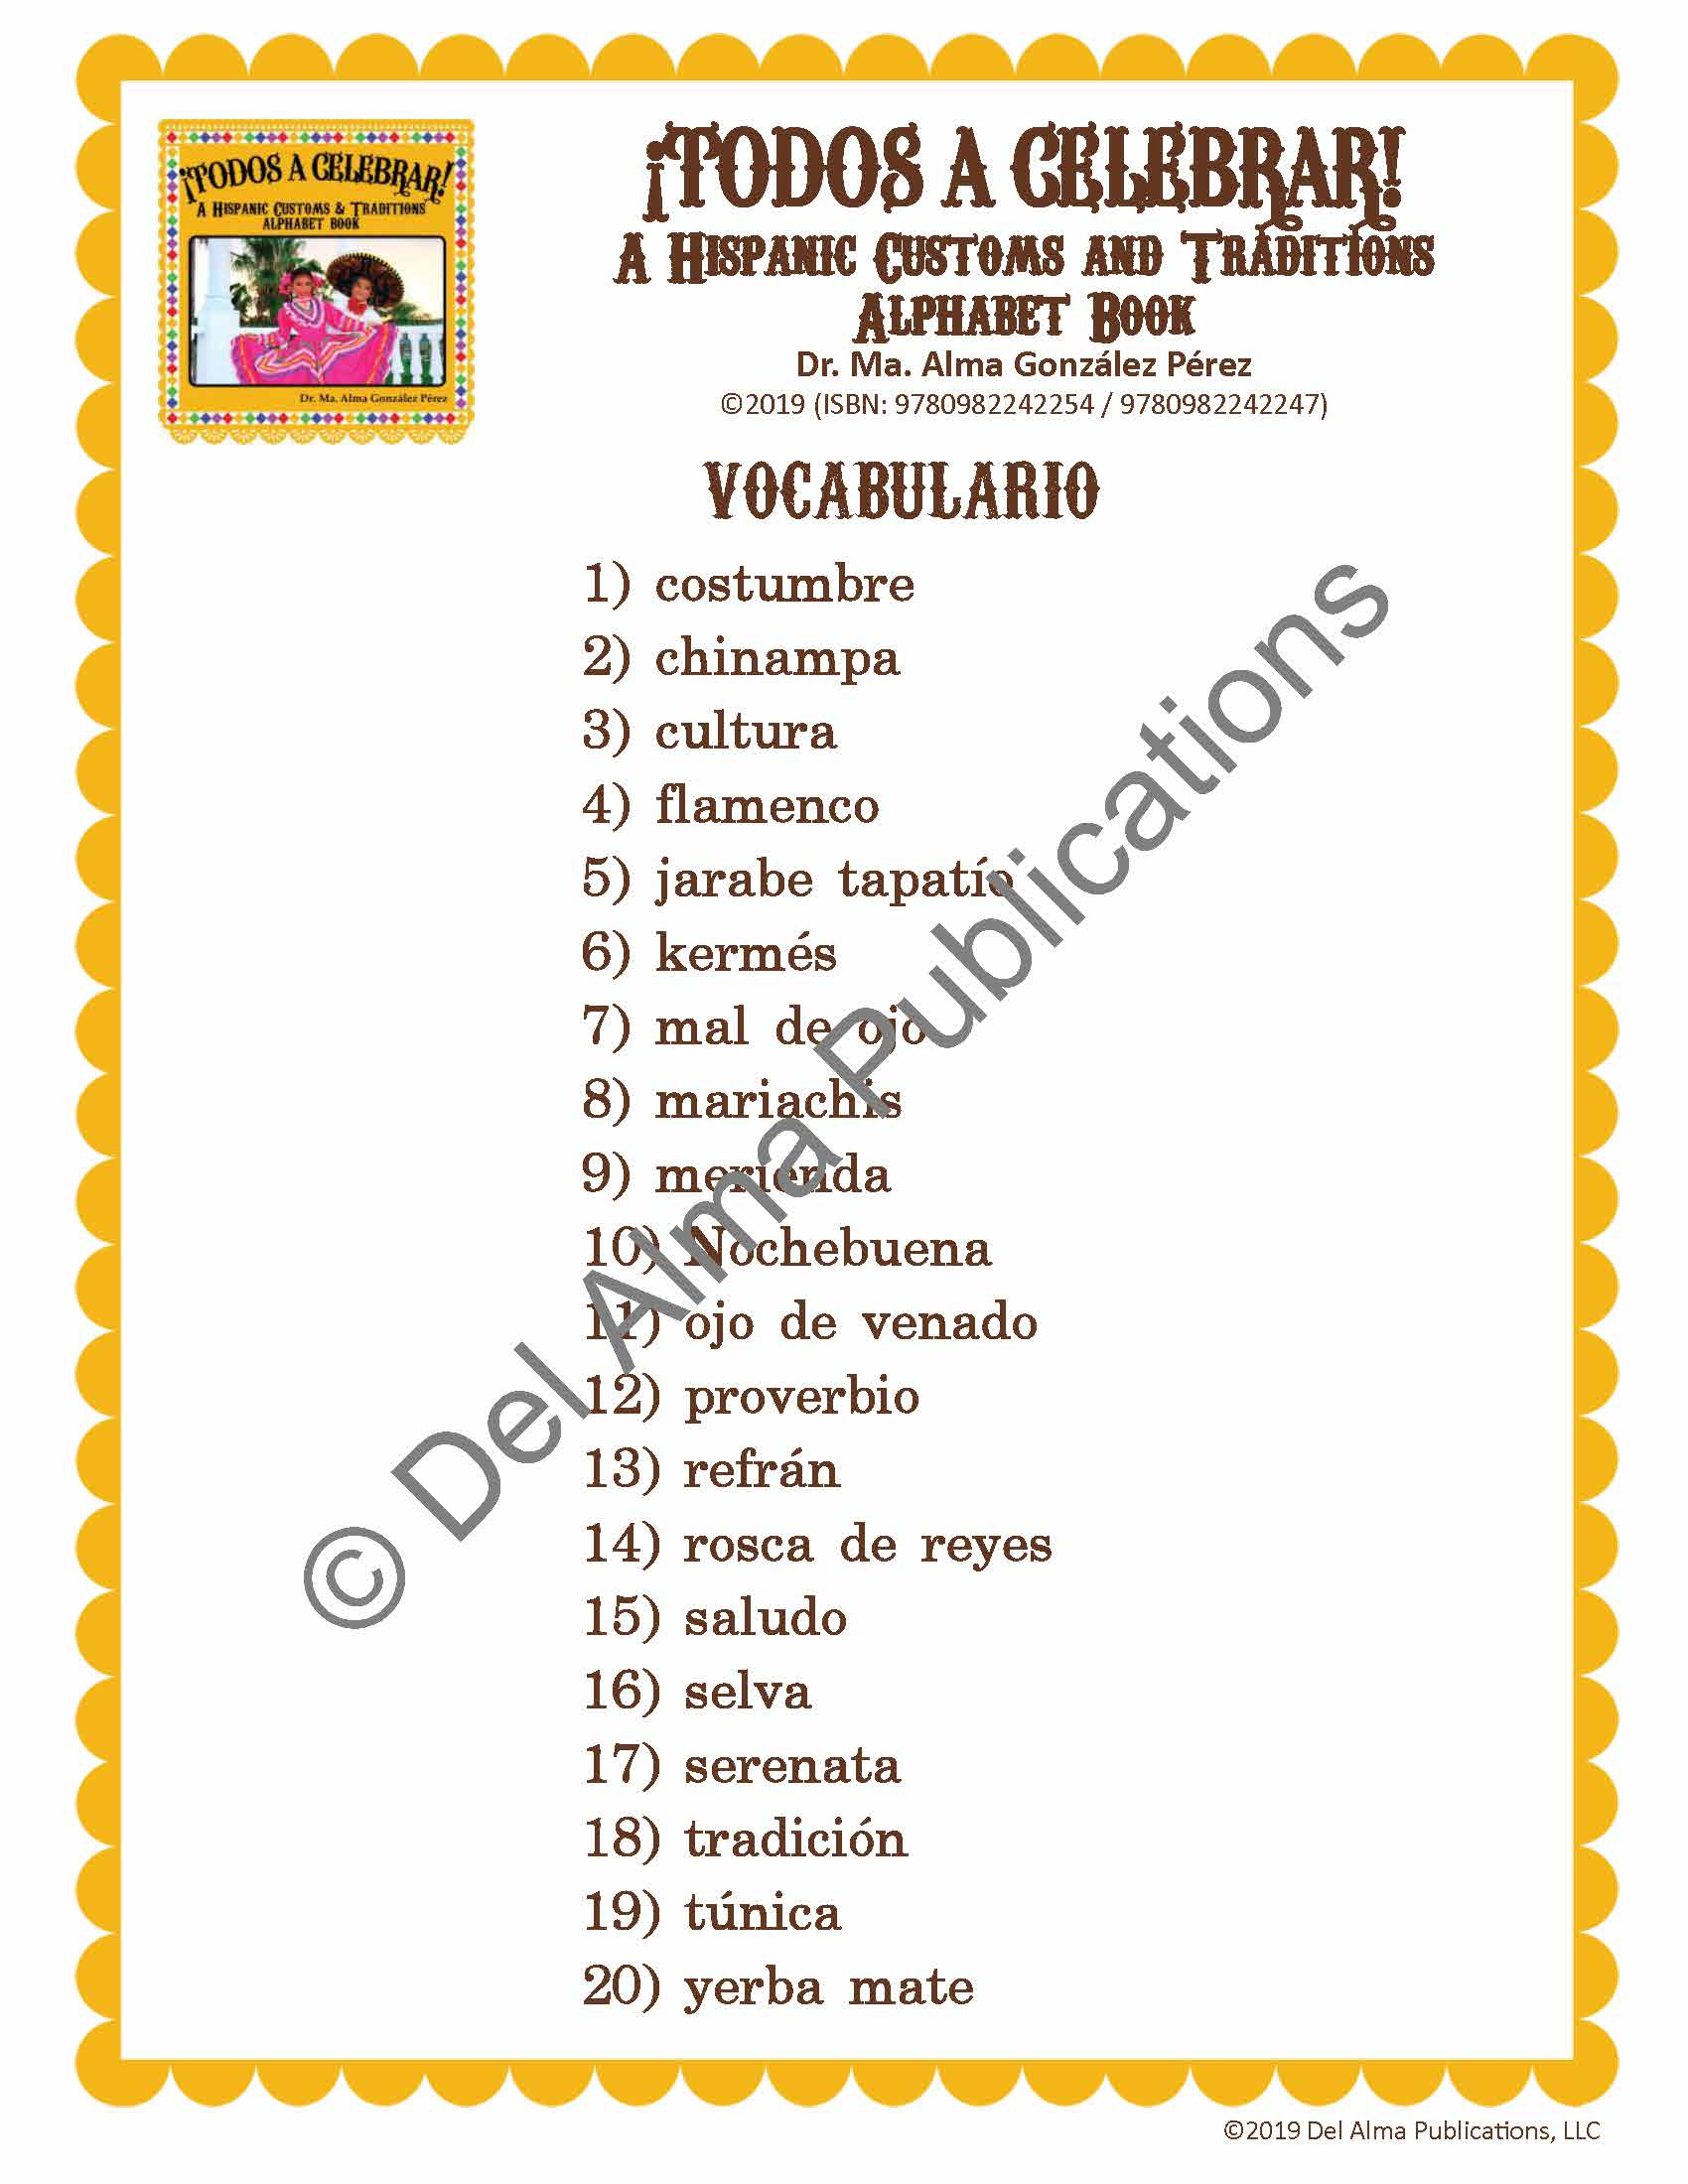 Hispanic Culture Vocabulary and Spelling Lists (Spanish)